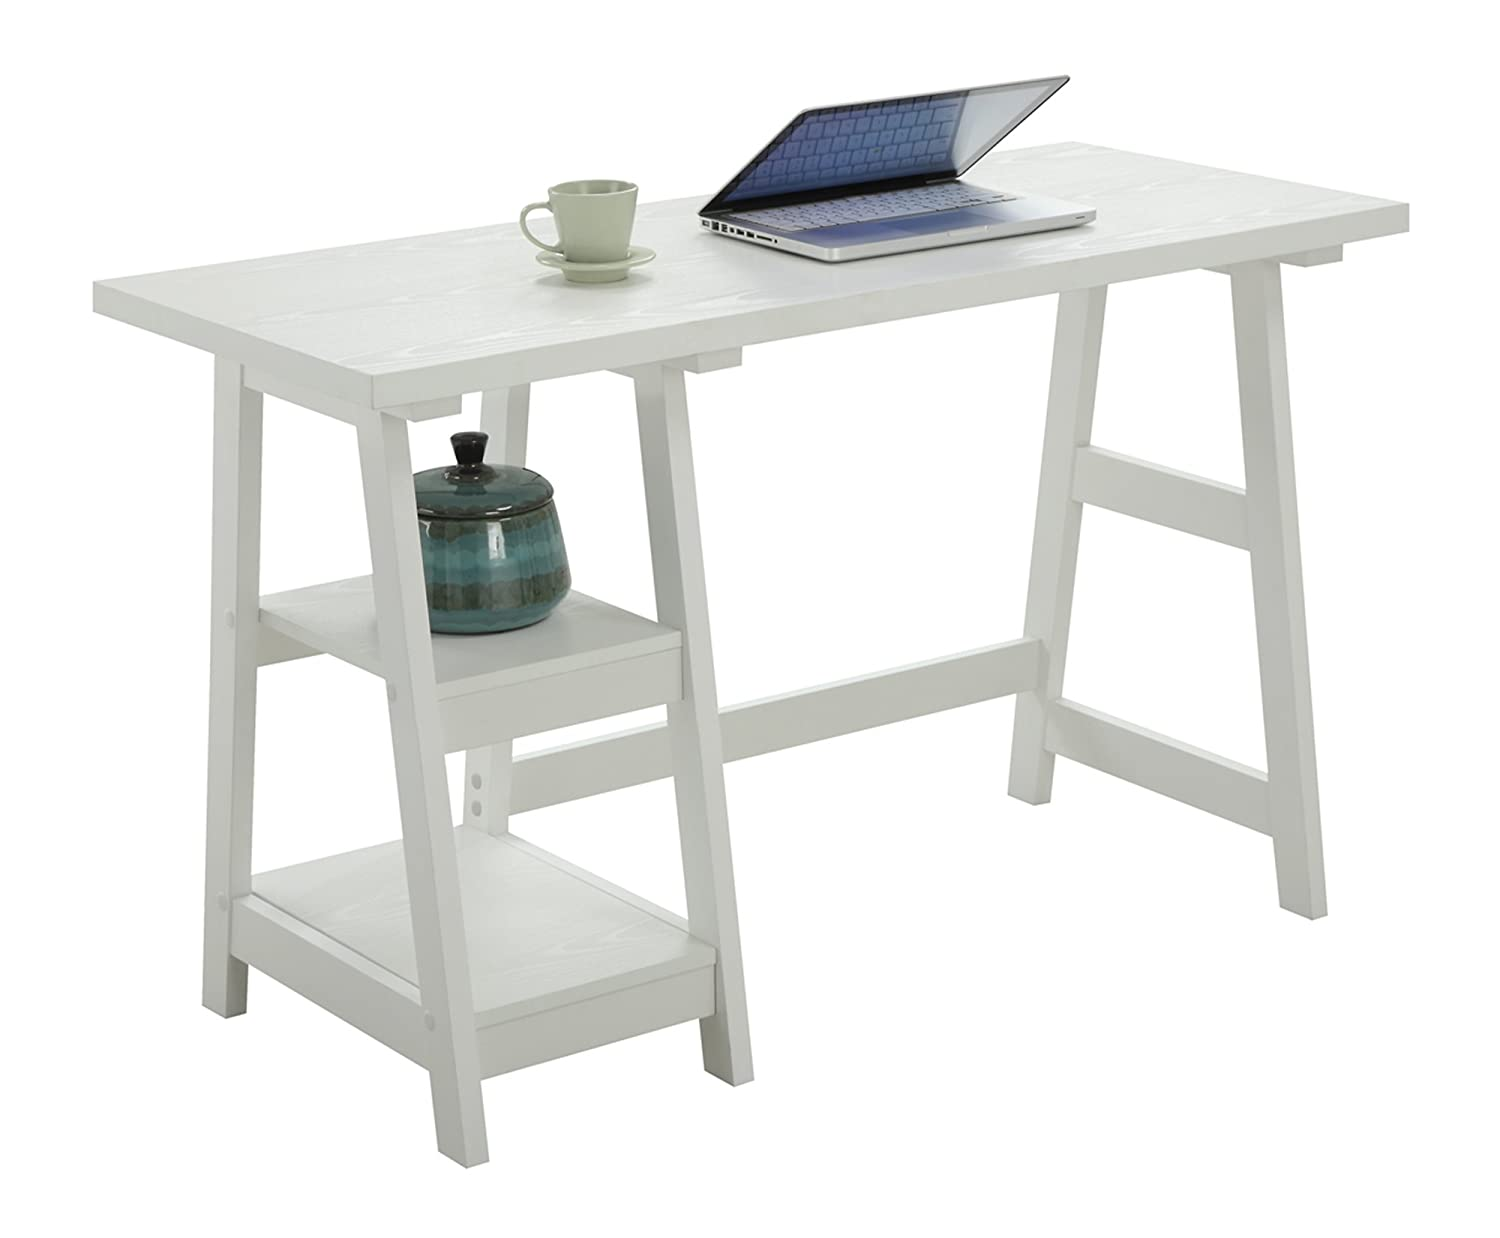 Convenience Concepts 090107W Designs2Go Trestle Desk, White, White